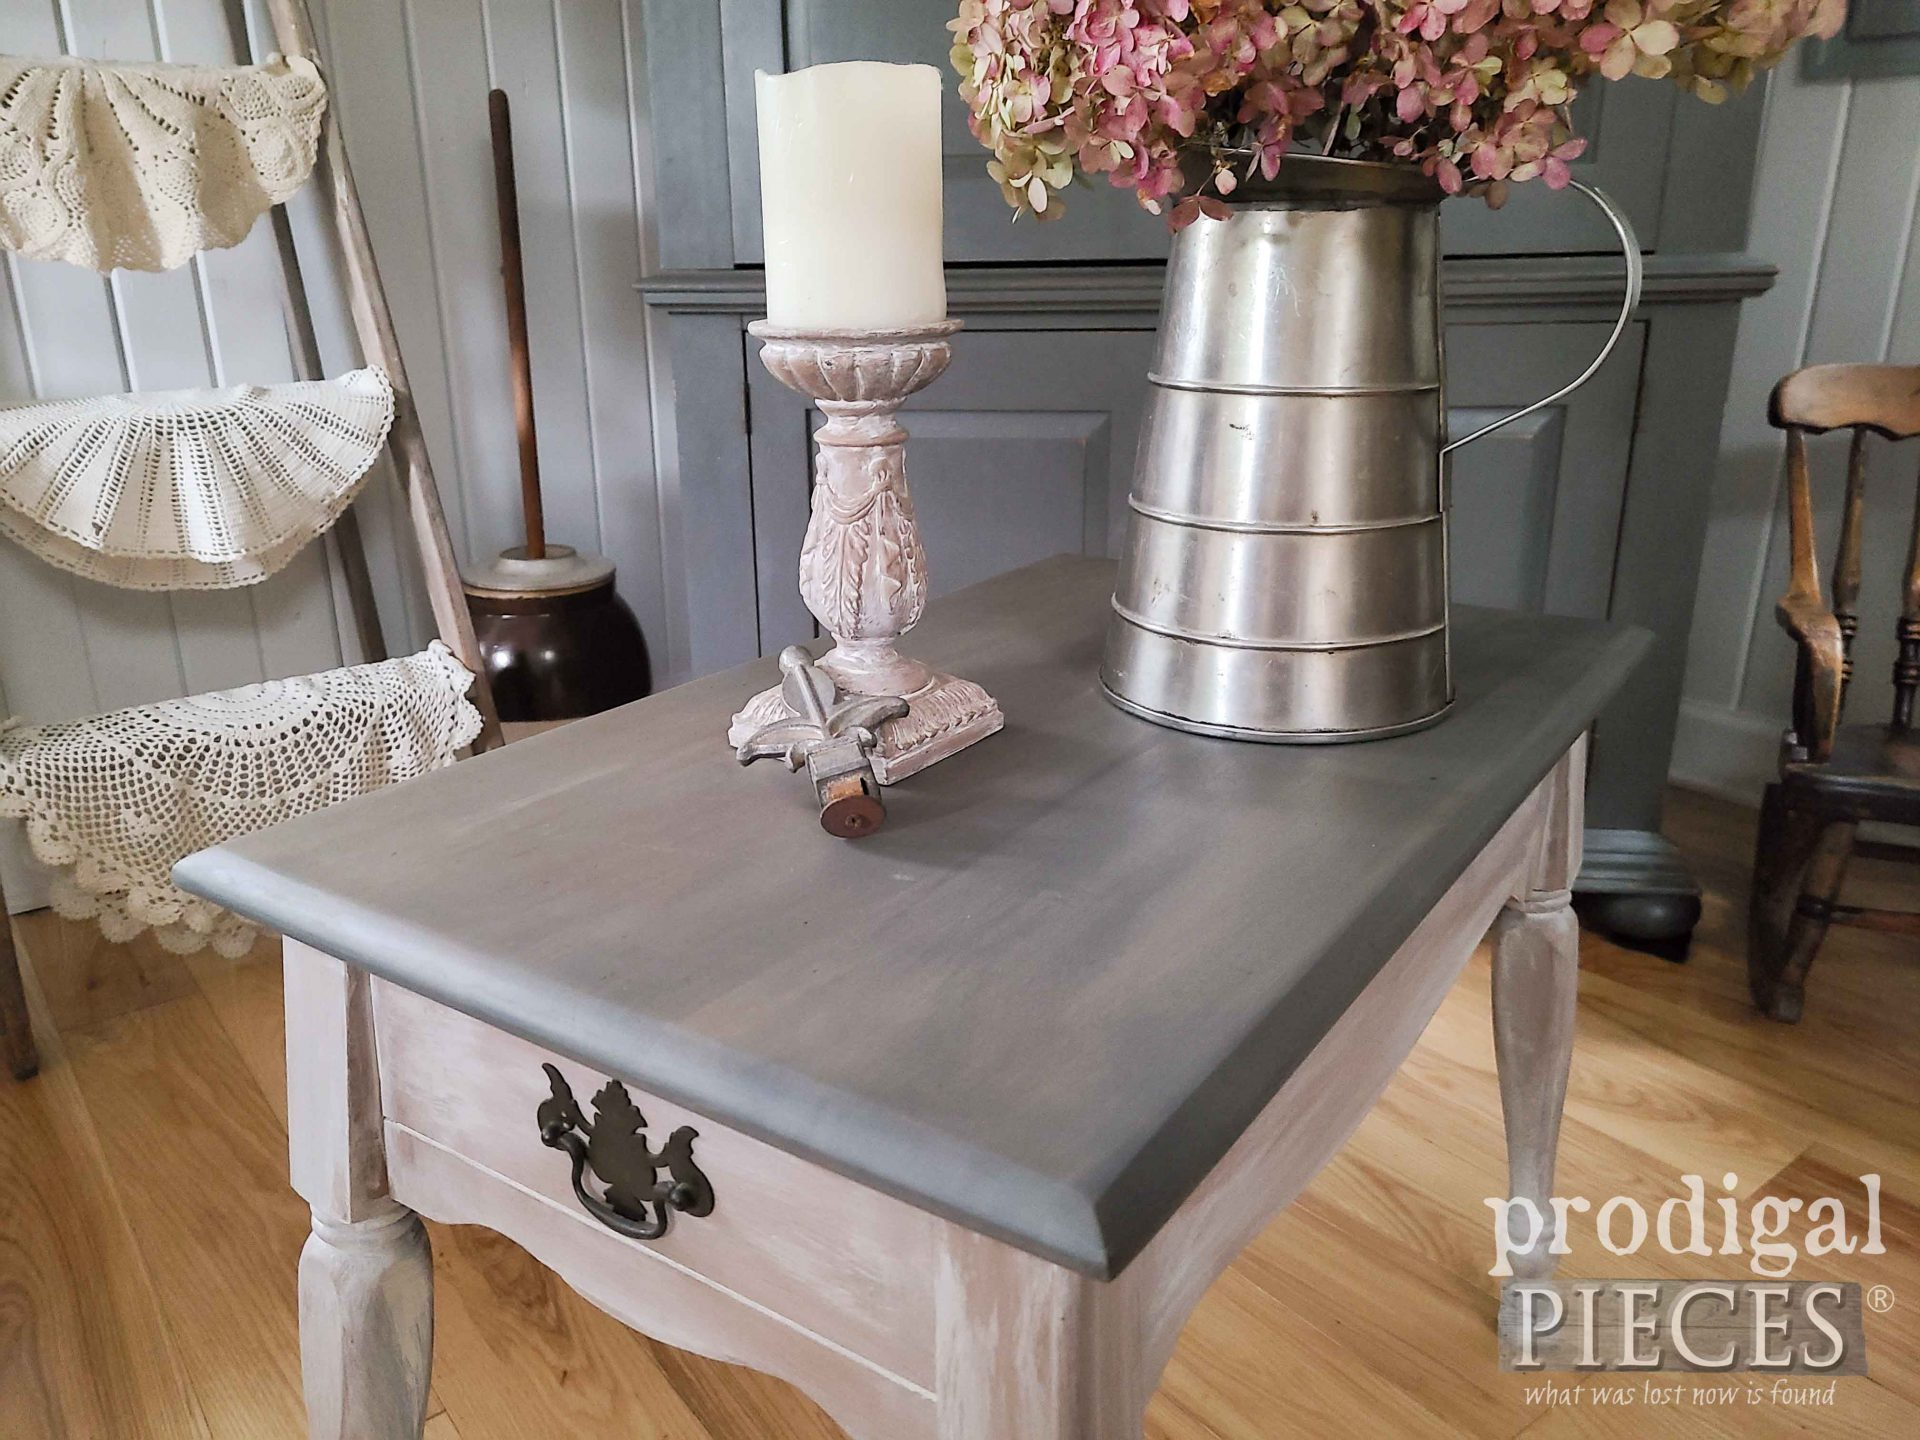 Stained Gray Vintage Farmhouse Table Top by Larissa of Prodigal Pieces | prodigalpieces.com #prodigalpieces #furniture #diy #home #vintage